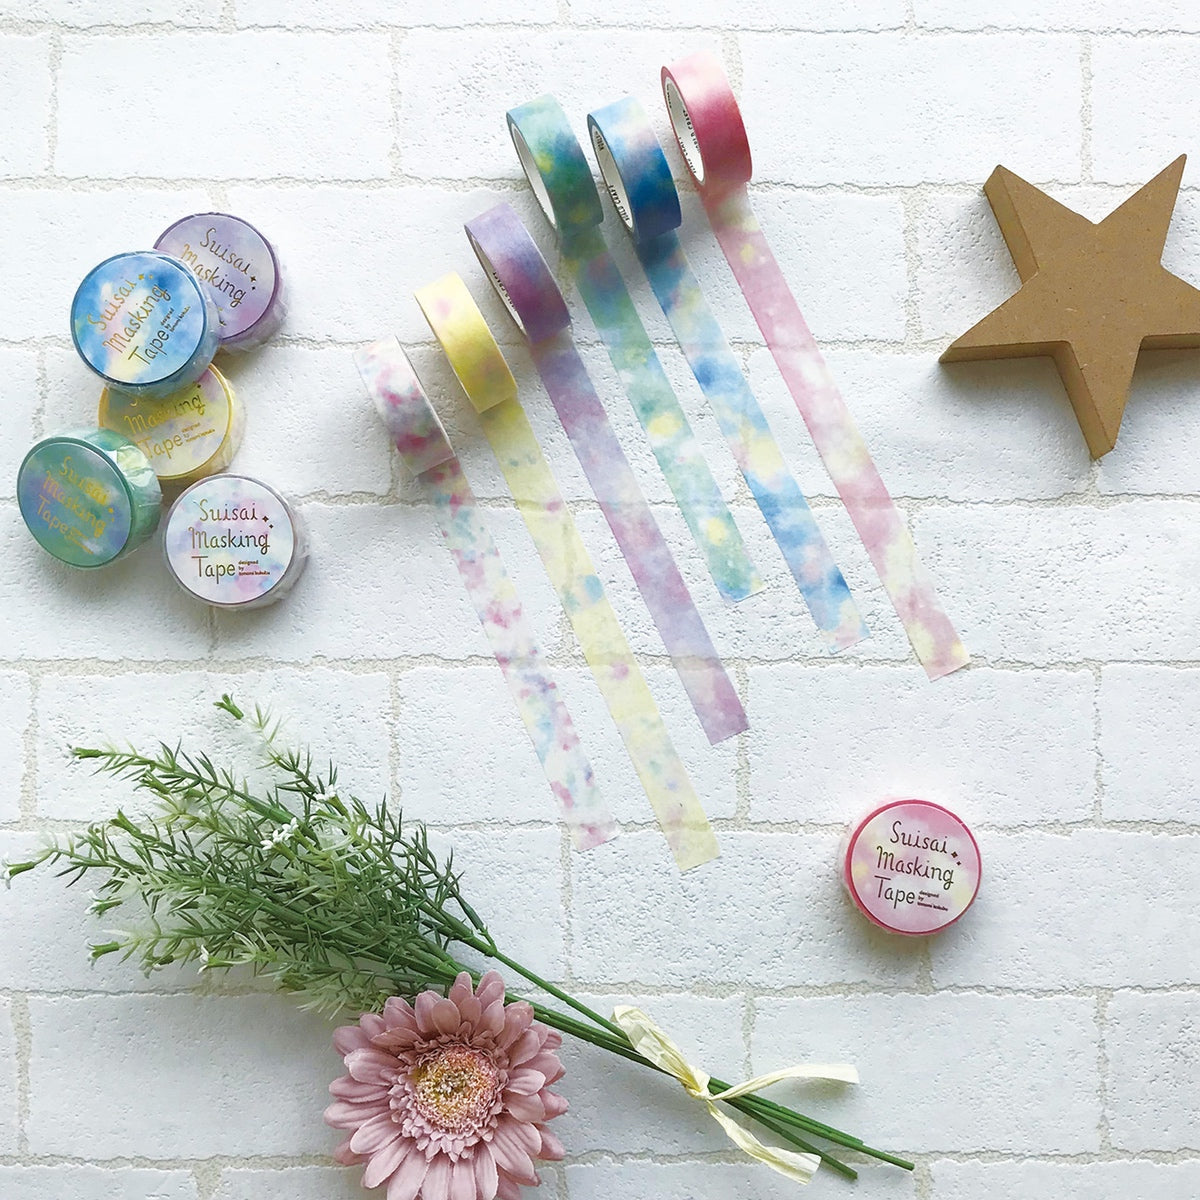 WATERCOLOUR WASHI TAPE : BLUE HUES